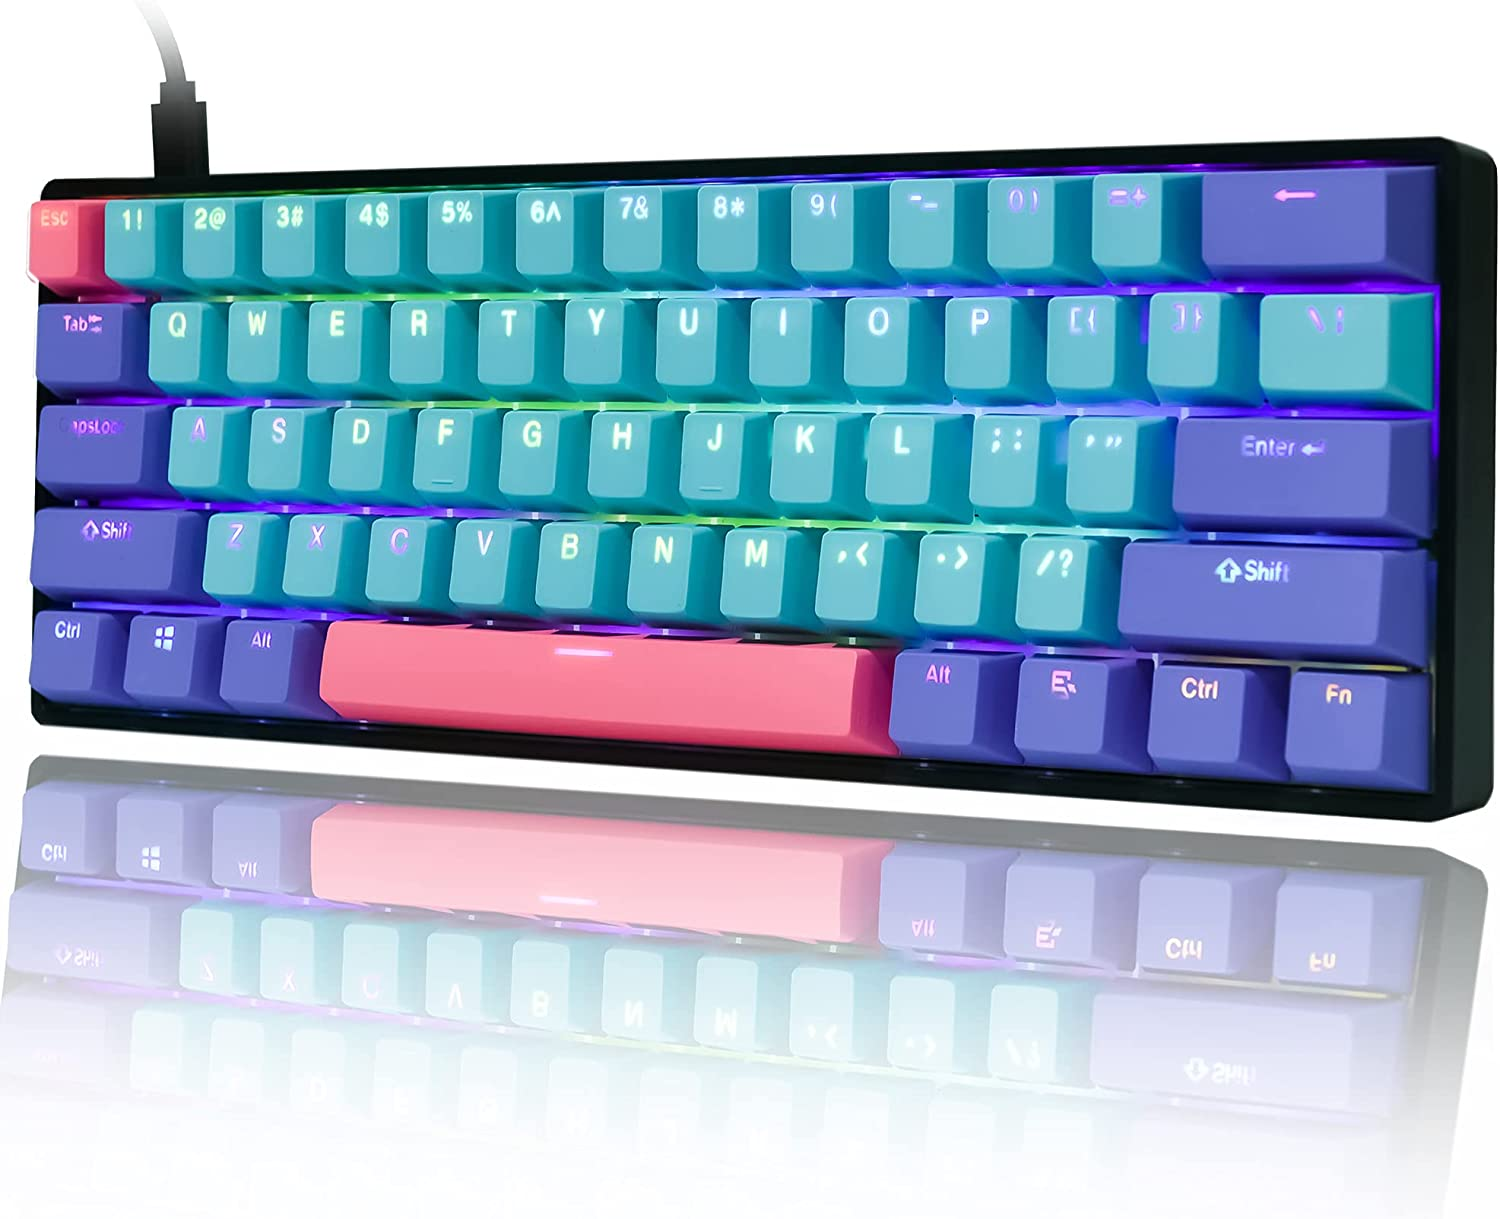 Gk61 SK61 60% Mechanical Keyboard, Custom Hot Swappable 60 Percent PBT keycaps Gaming Keyboard with RGB Backlit NKRO Type-C Cable for Win/PC/Mac, Water-Resistant (Gateron Optical Yellow, Joker)